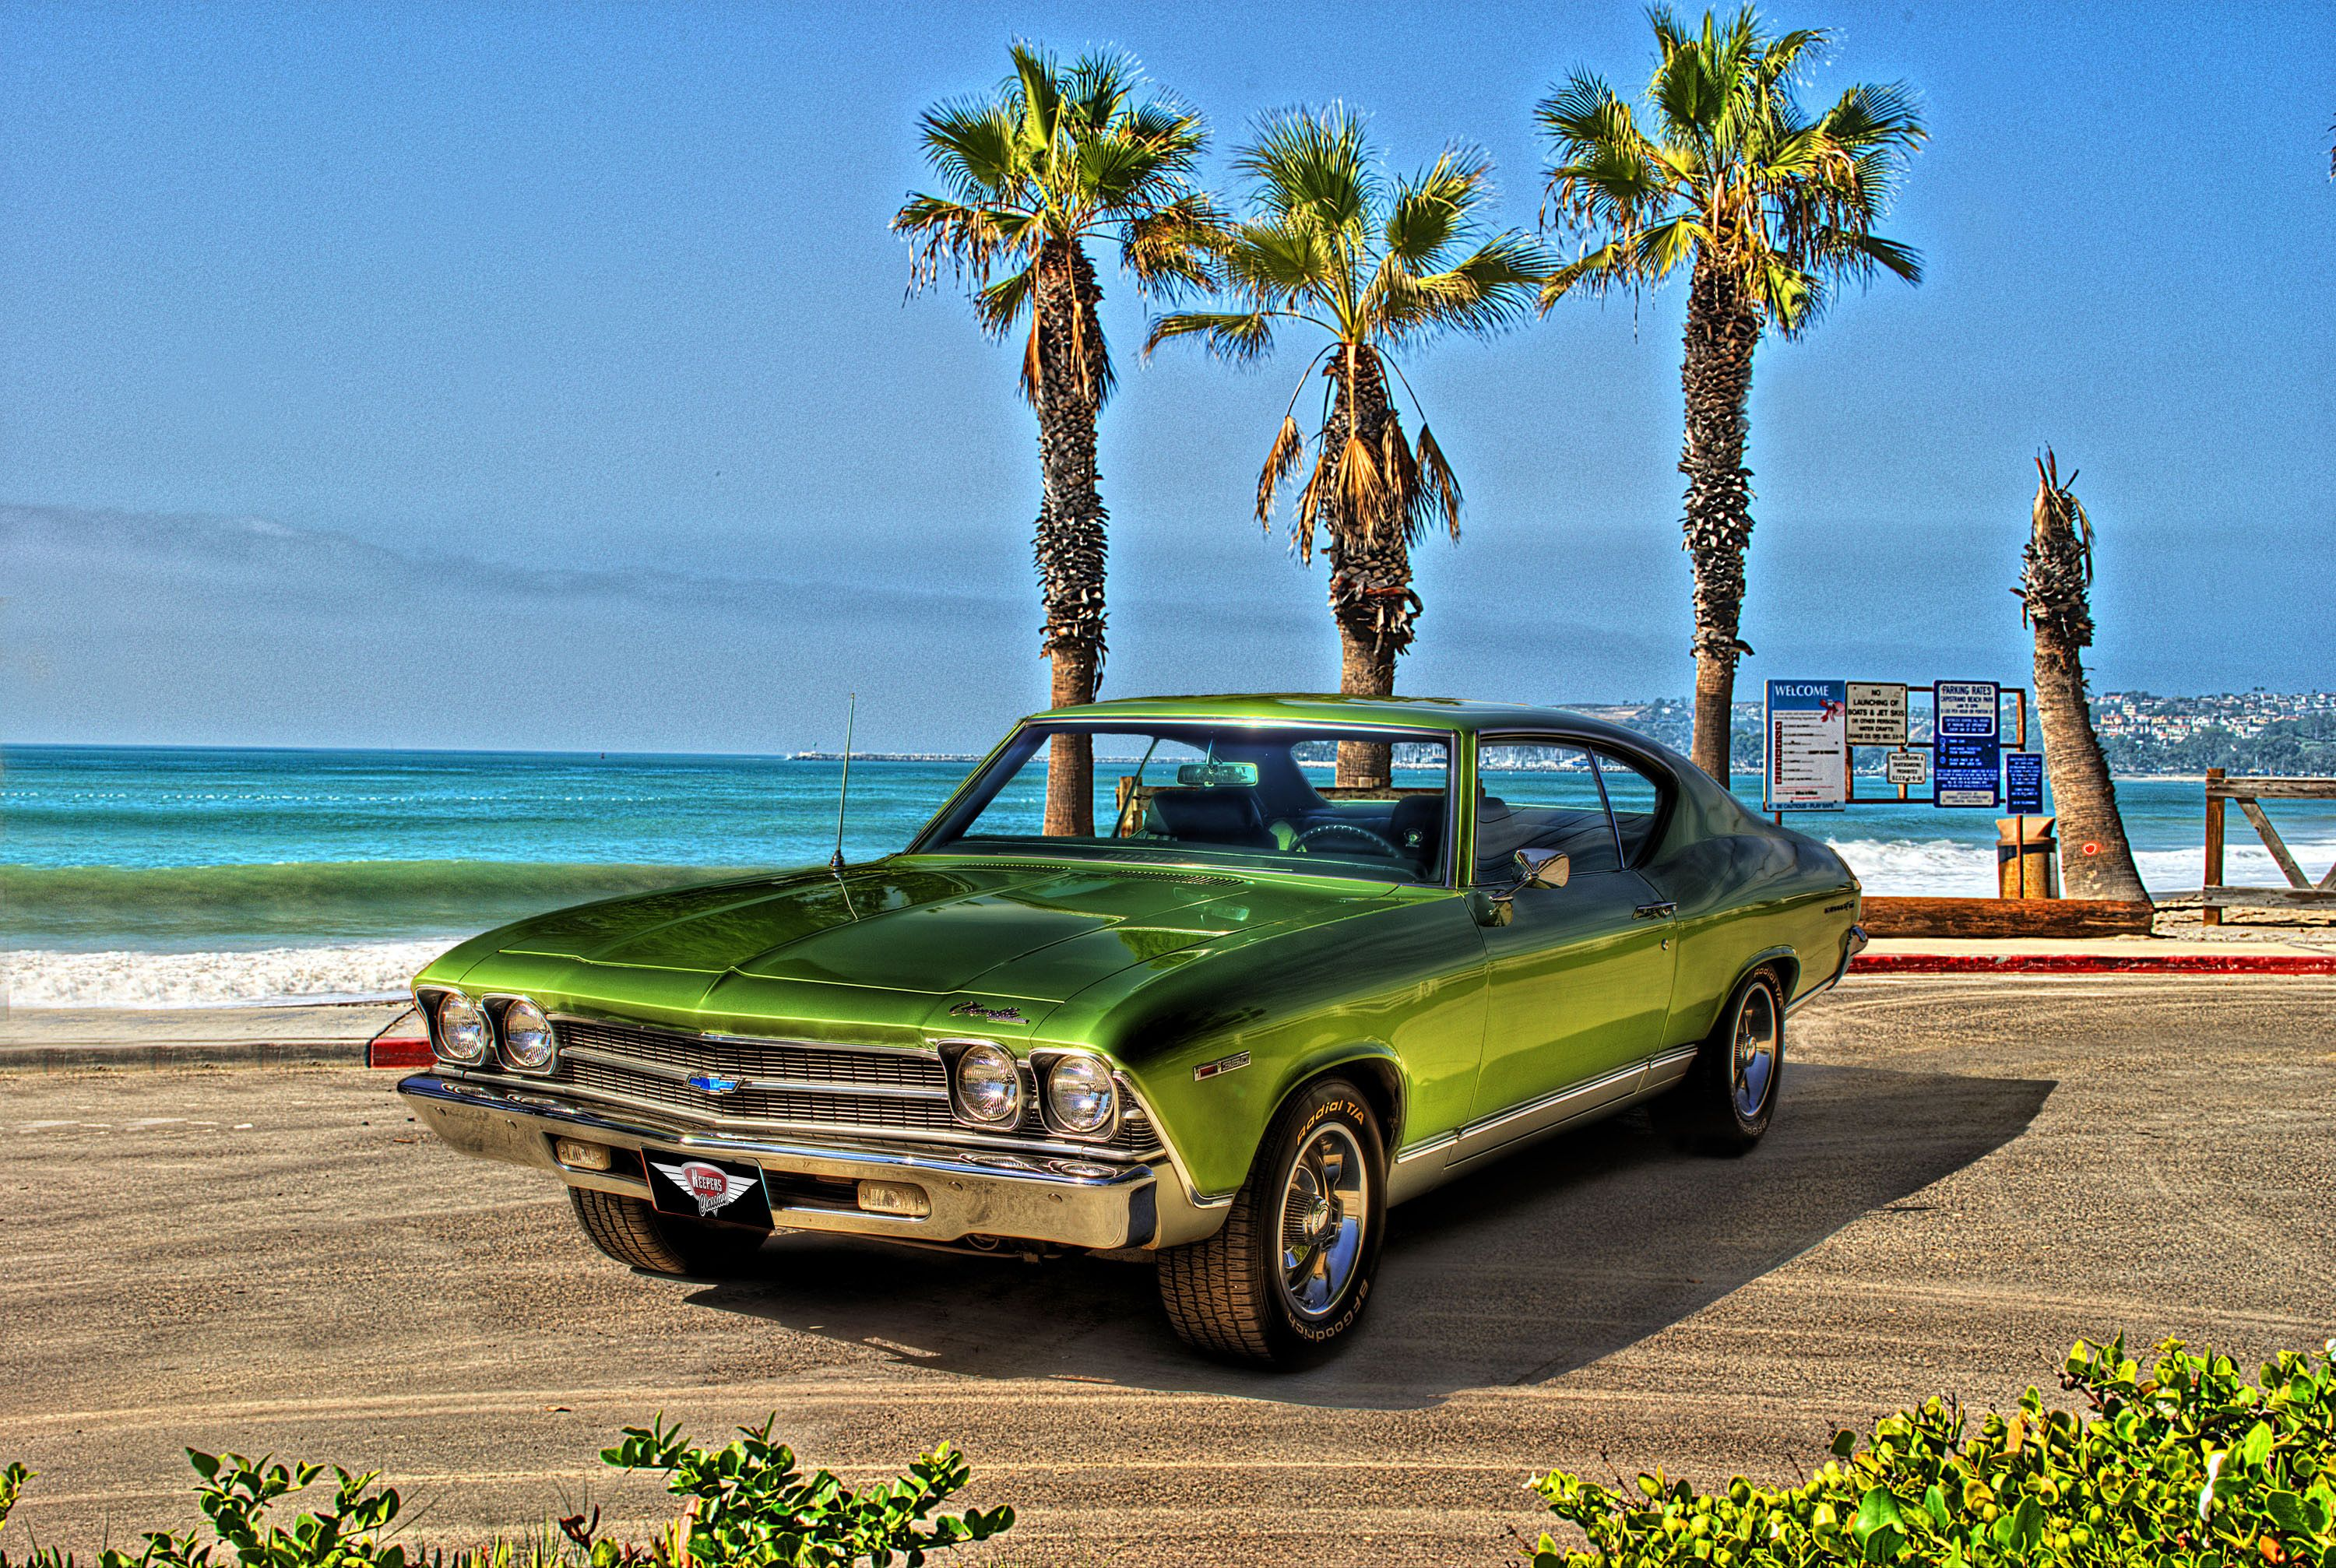 """1969 Chevrolet Chevelle favored 60s """"Muscle Car"""" Chevelle"""